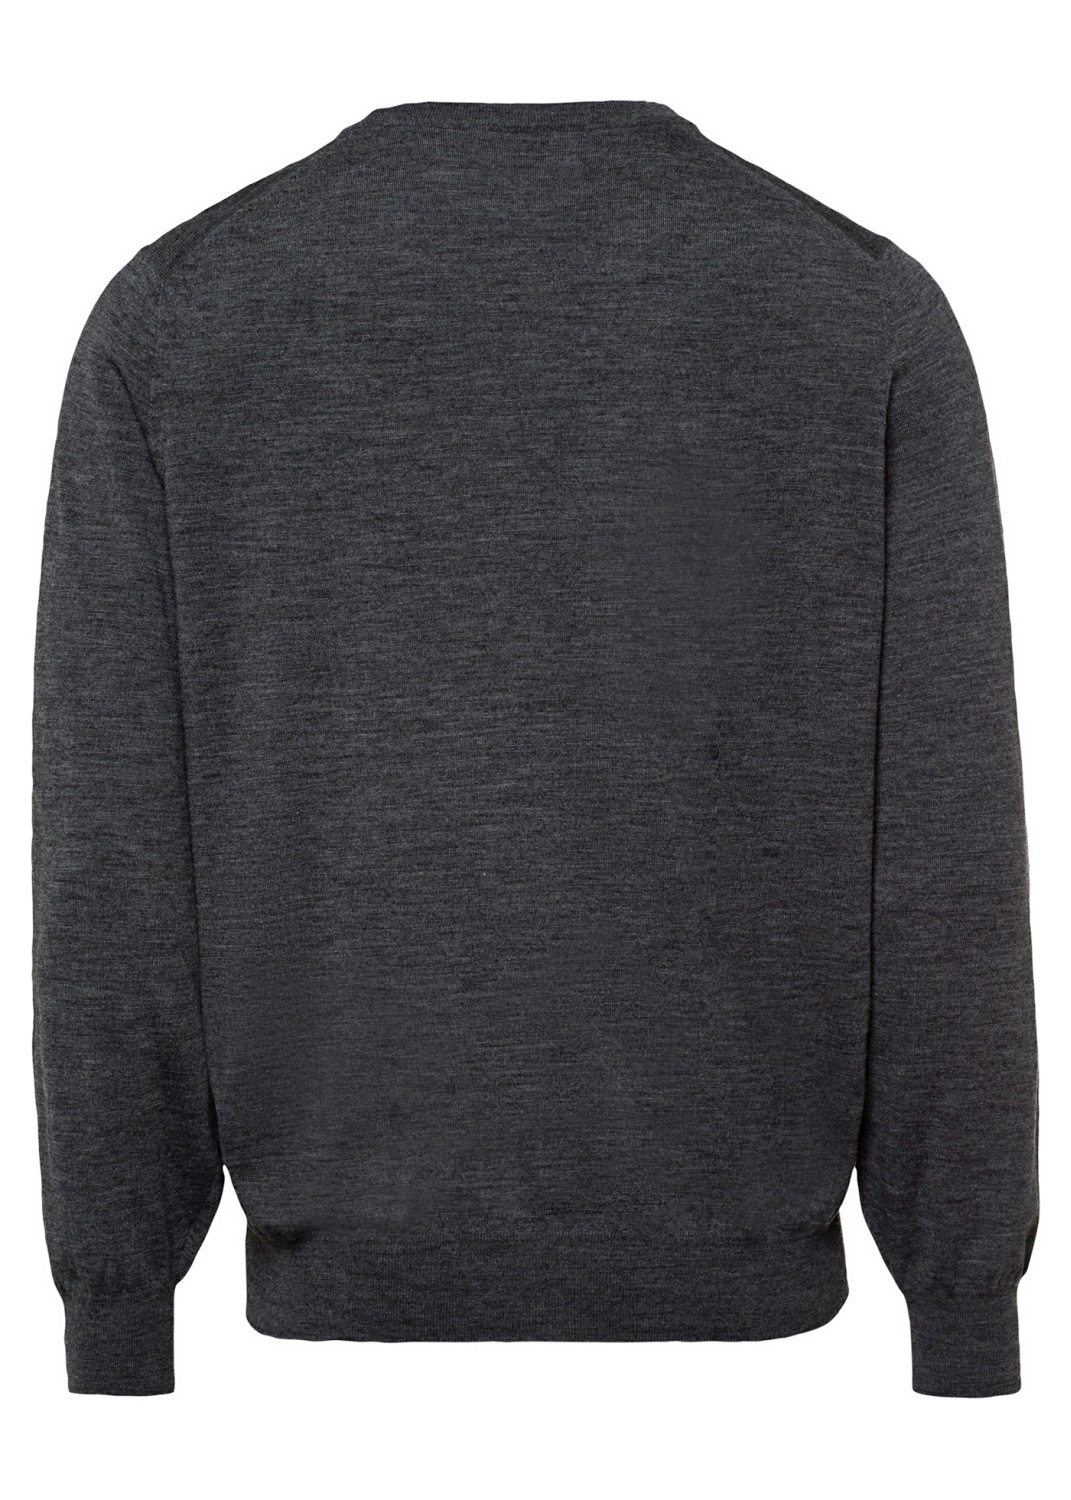 GIROCOLLO M/L - Pullover image number 1